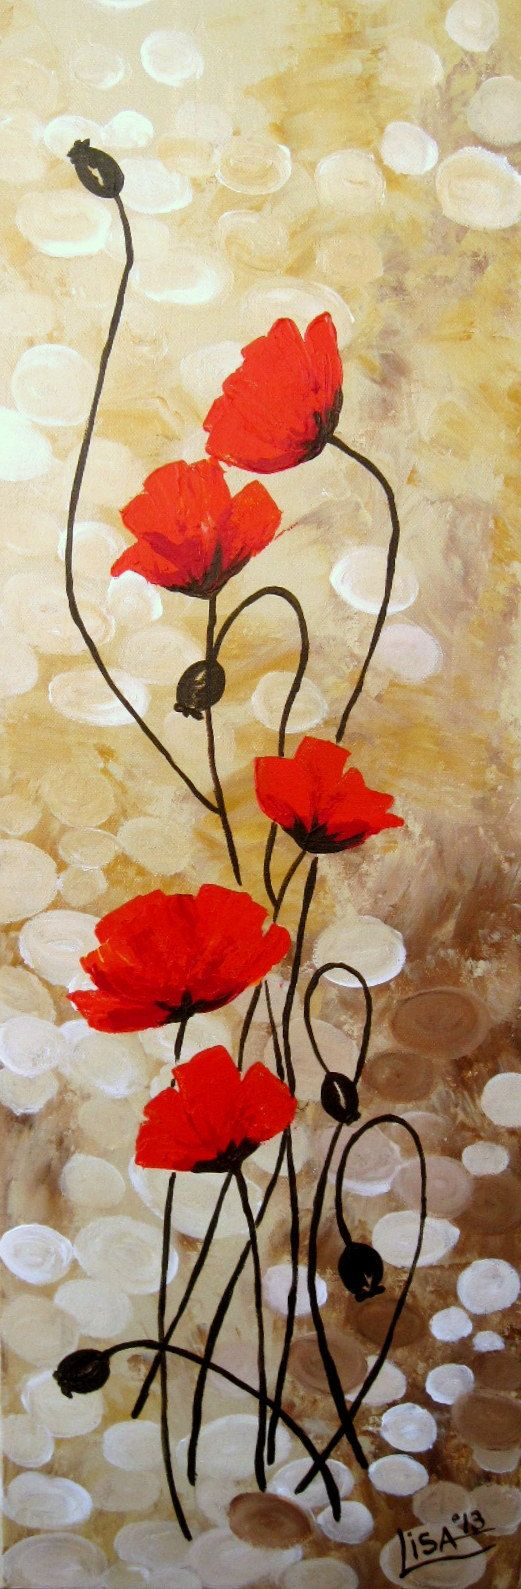 Original Acrylic Painting Red Poppies Flowers by ArtonlineGallery ...